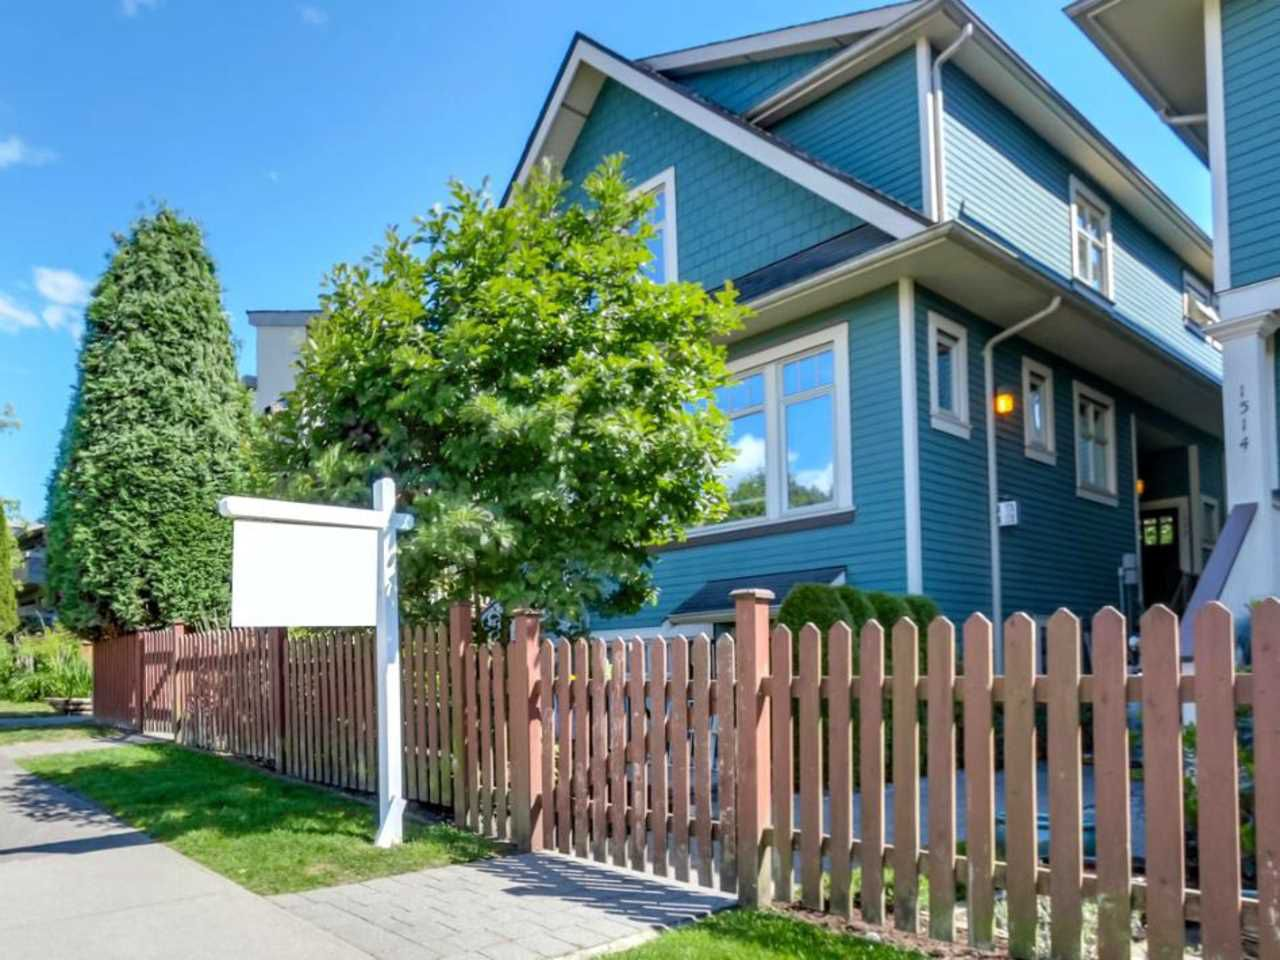 Main Photo: 1522 GRAVELEY Street in Vancouver: Grandview VE Townhouse for sale (Vancouver East)  : MLS®# R2071637